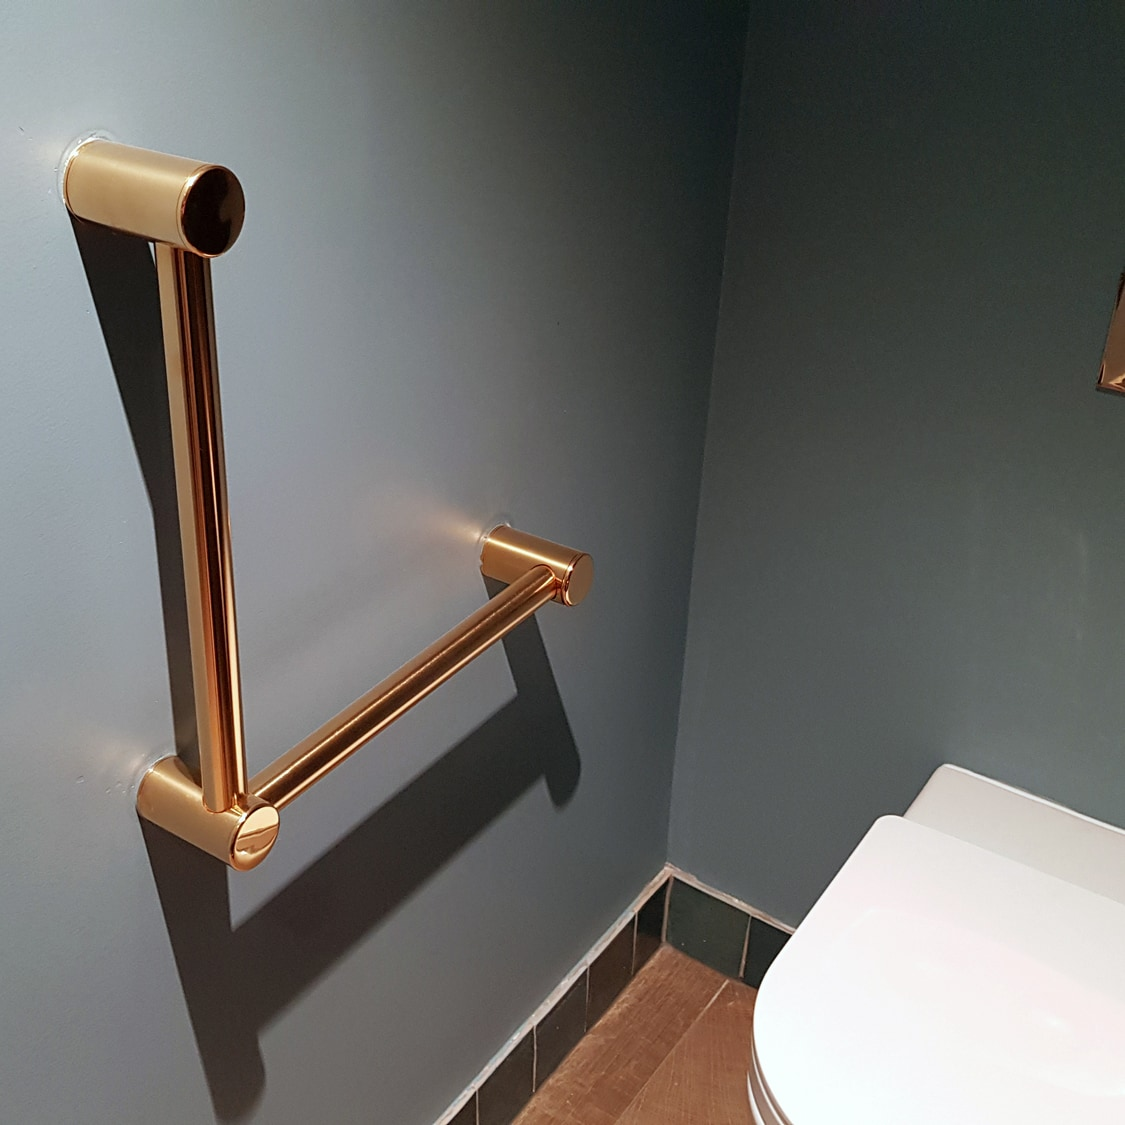 Avail Brushed Gold Angled Toilet Grab Rail